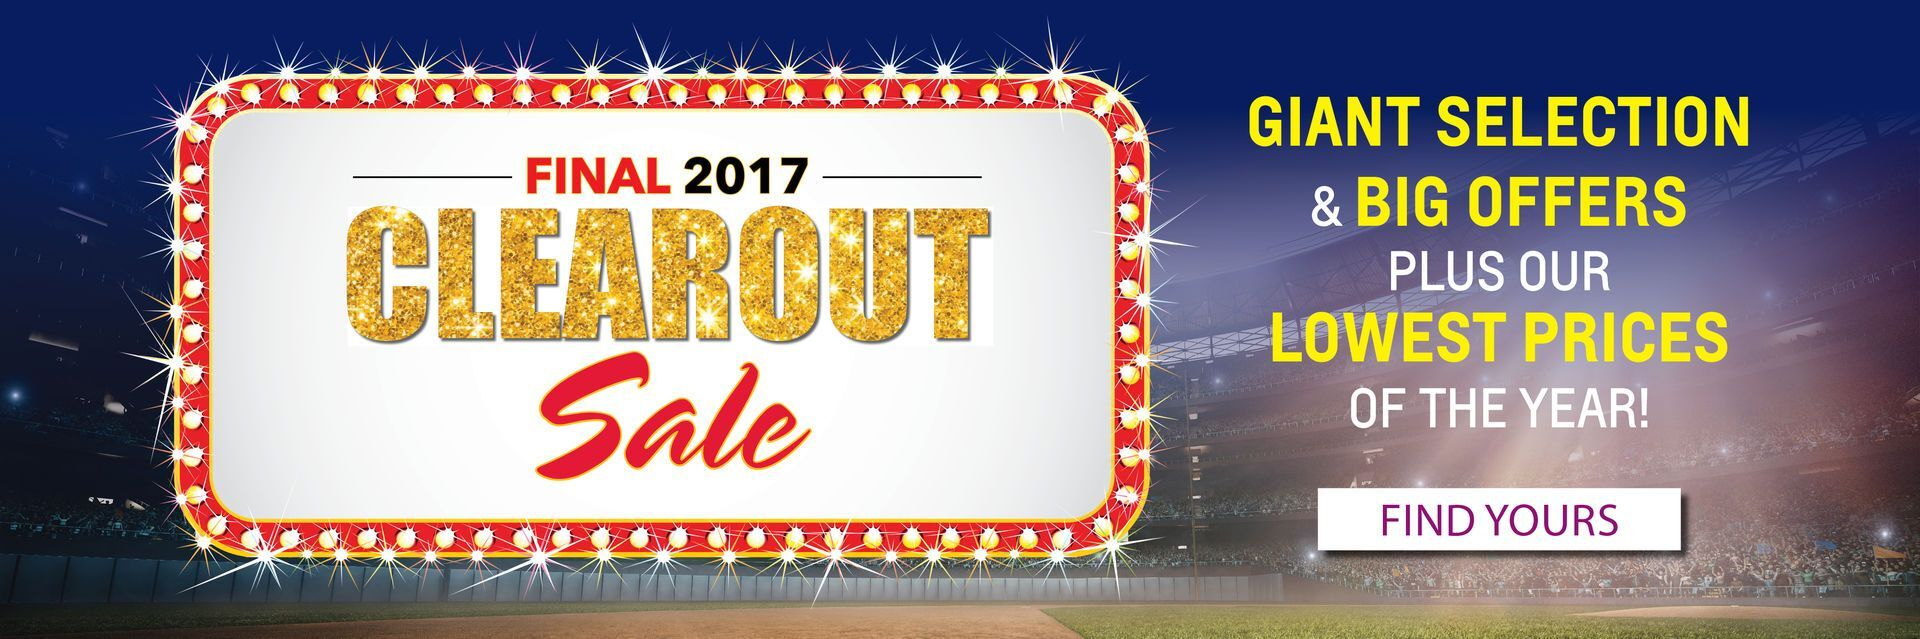 Final 2017 Clearout Sale at Holiday Mazda in Fond du Lac, WI